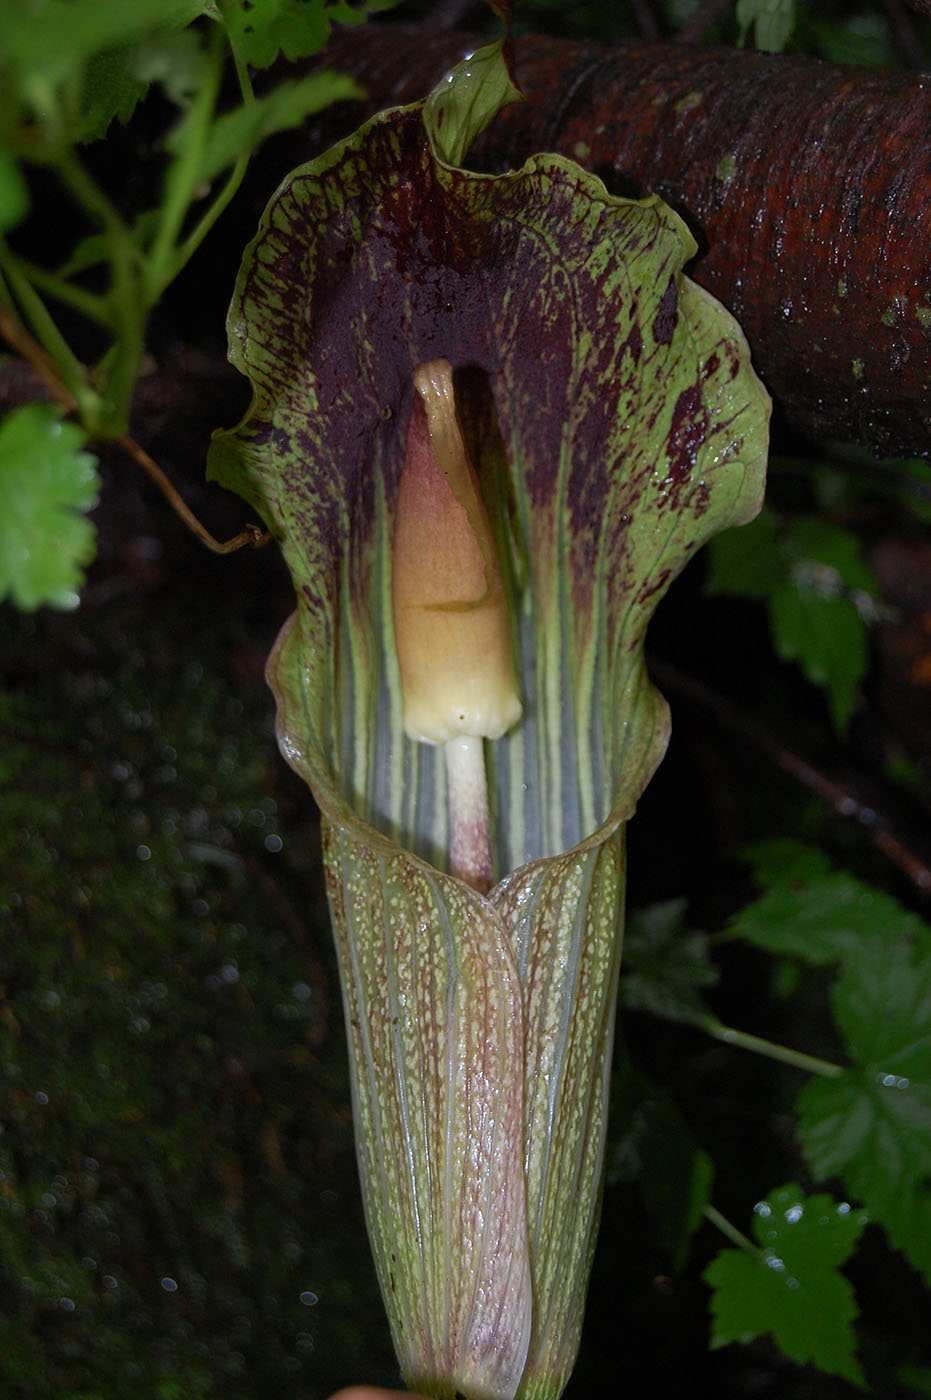 Arisaema sp. Sect. Arisaema - W/O-9074 - 50% off!